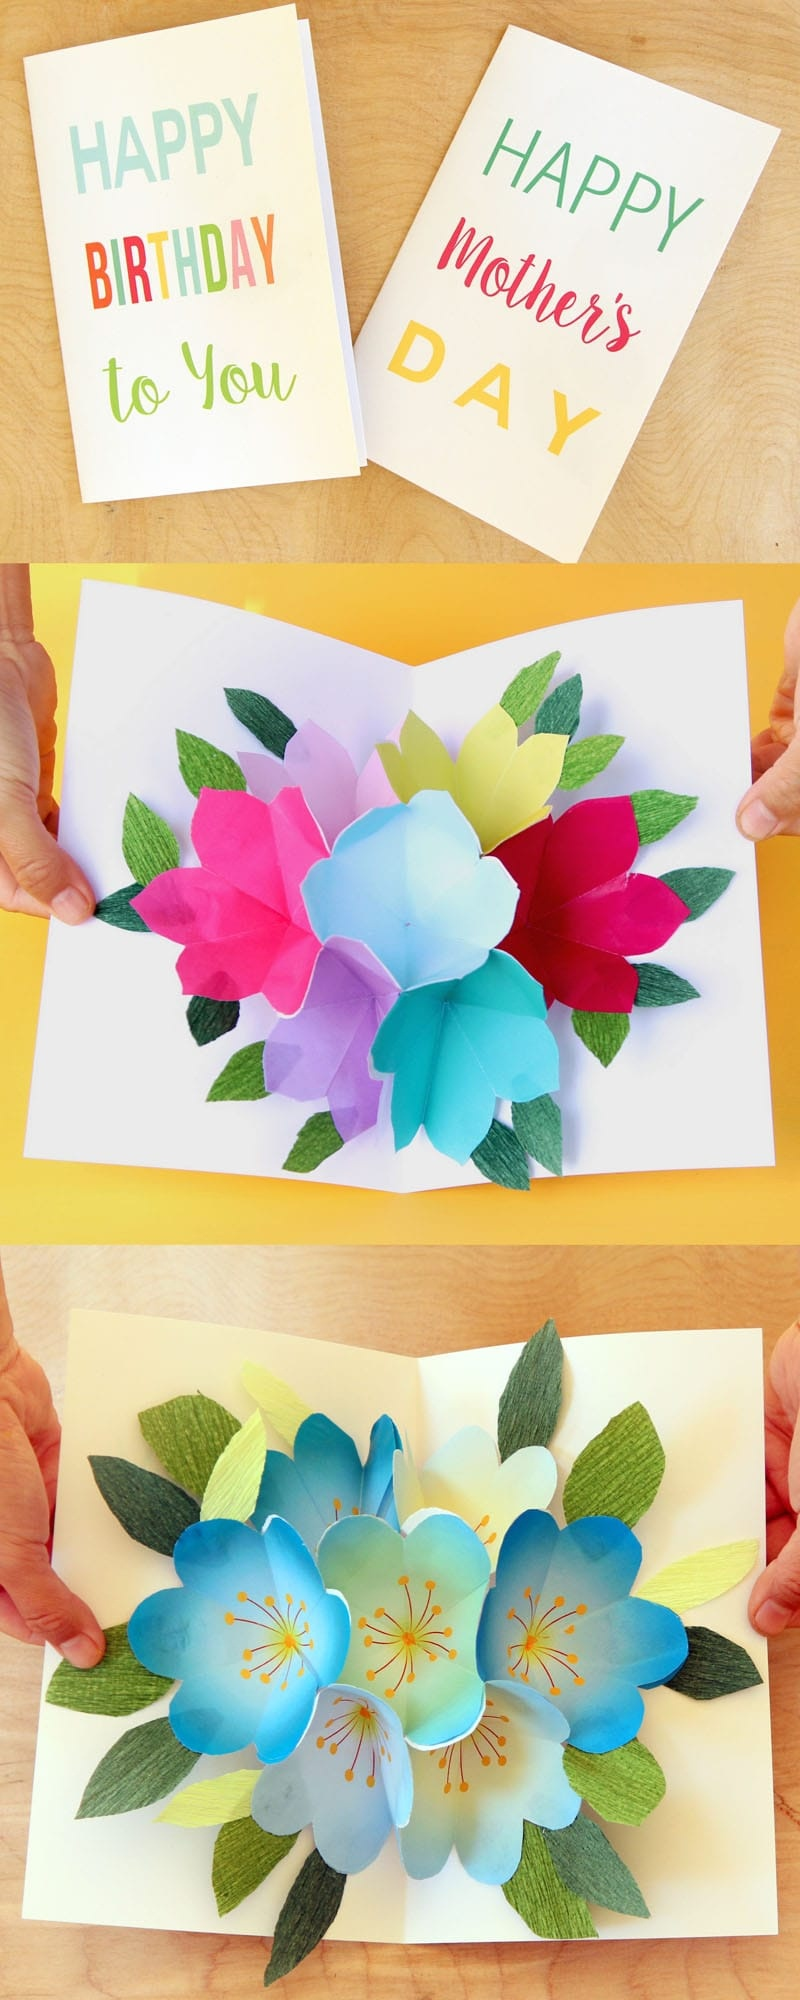 Free Printable Happy Birthday Card With Pop Up Bouquet - A Piece Of - Free Printable Cards No Download Required